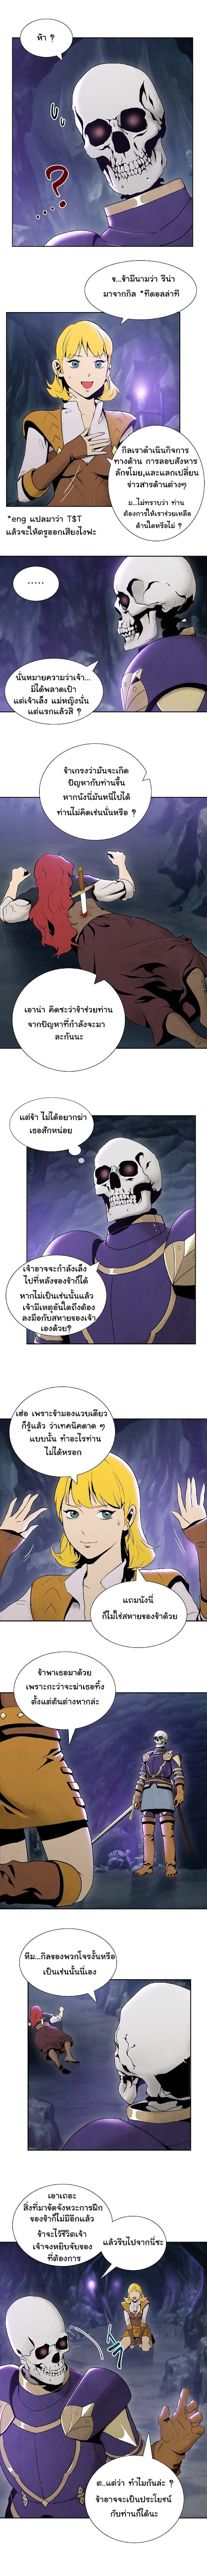 Skeleton Soldier - หน้า 3